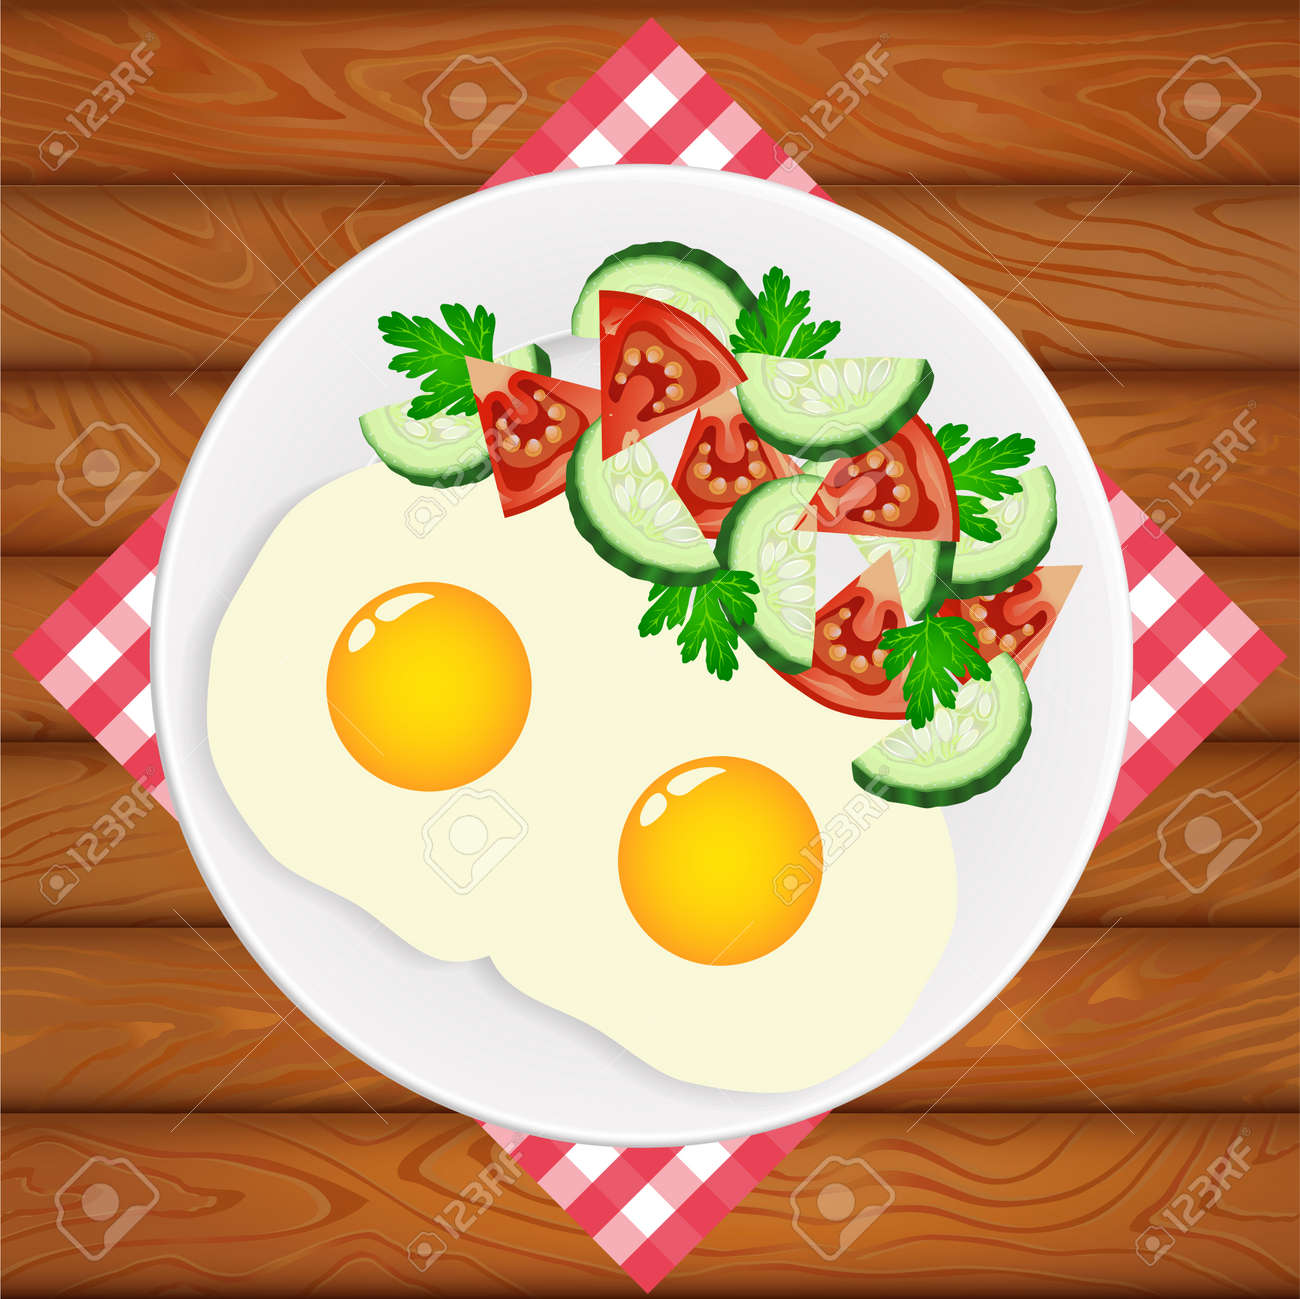 Freshly Cooked Two Eggs With Salad On White Plate Placed On The Royalty Free Cliparts Vectors And Stock Illustration Image 92714123